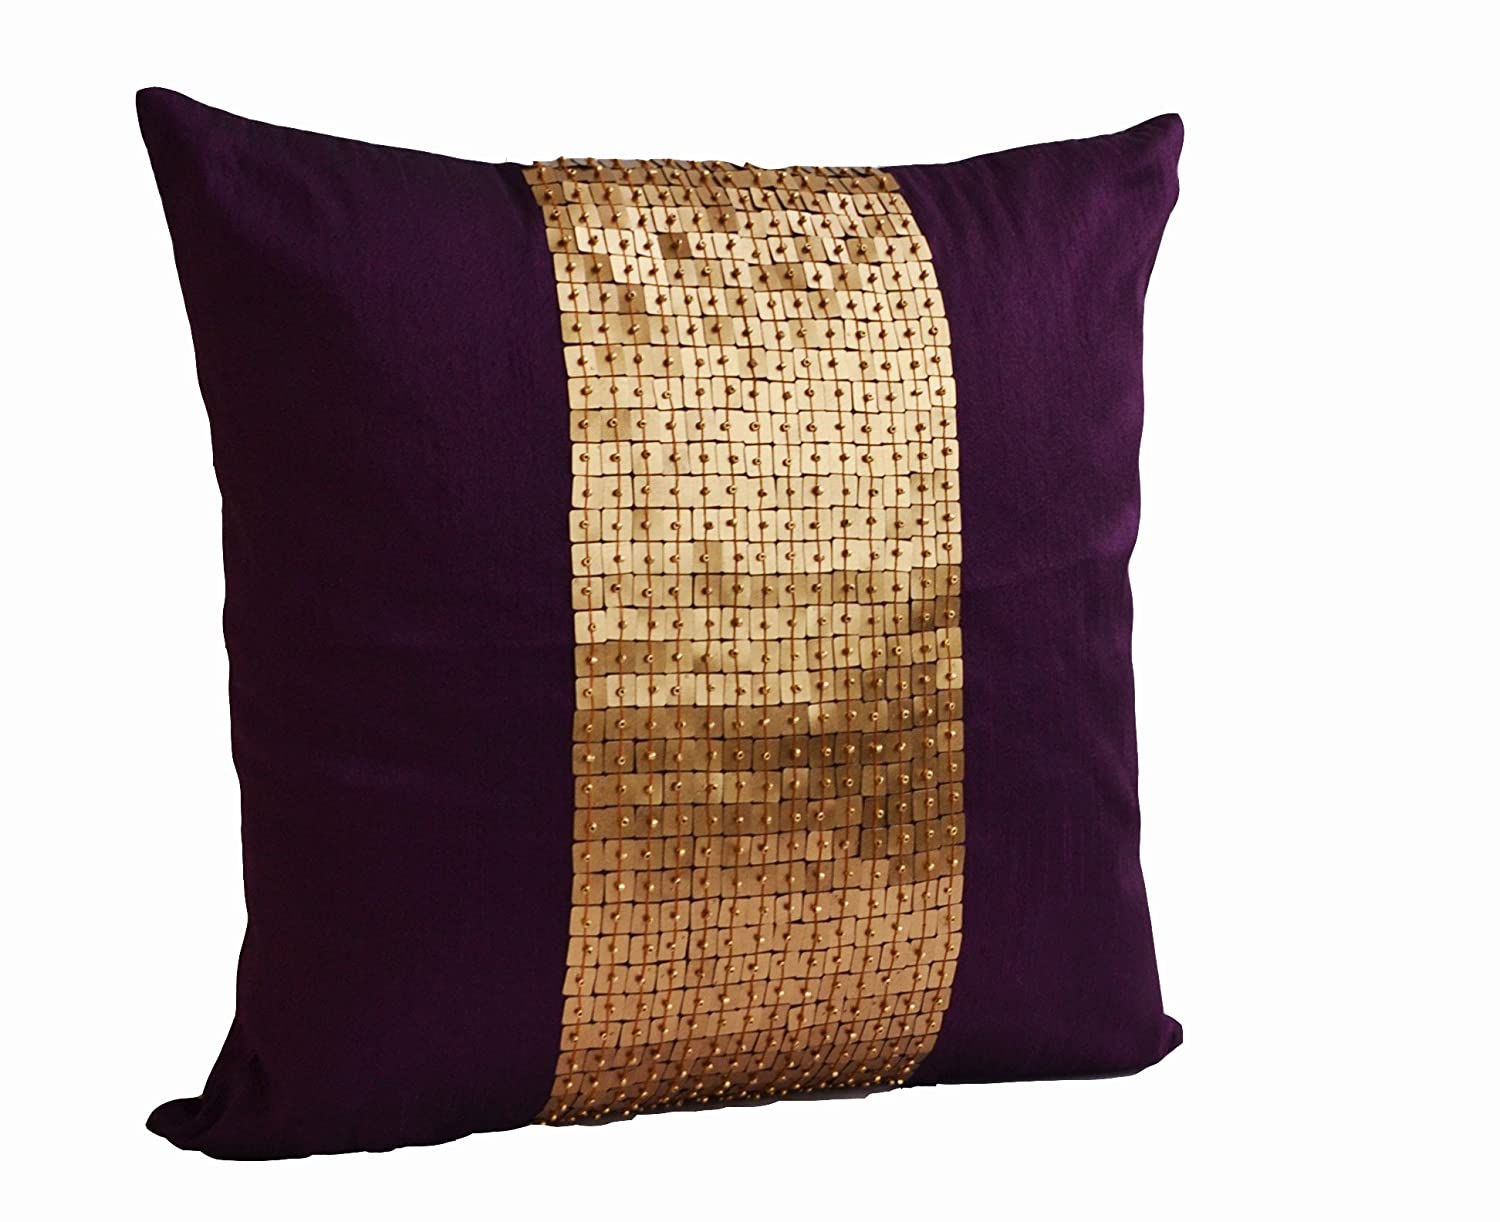 amazoncom amore beaute handmade purple throw pillows covers in  - amazoncom amore beaute handmade purple throw pillows covers in colorblock purple gold color block in art silk with sequin bead detail  cushioncovers